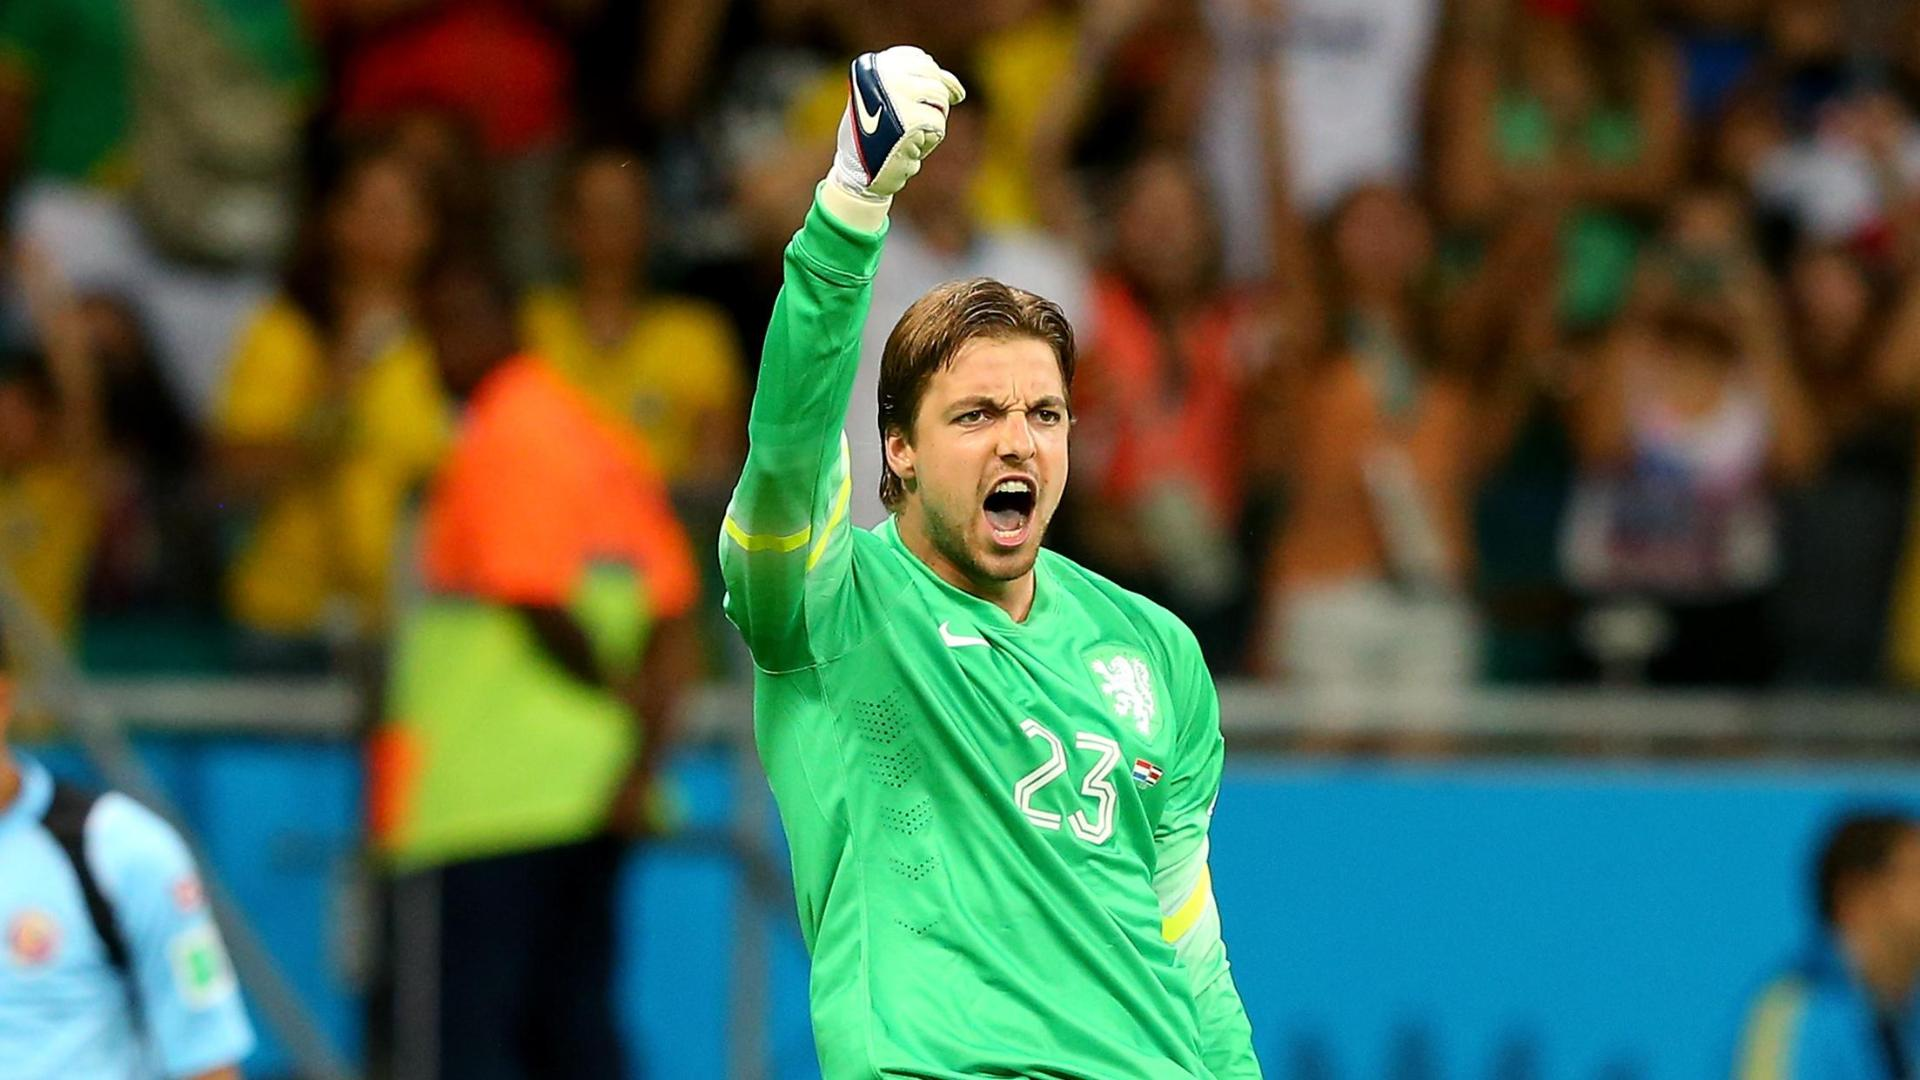 Van Gaal planned Krul switch